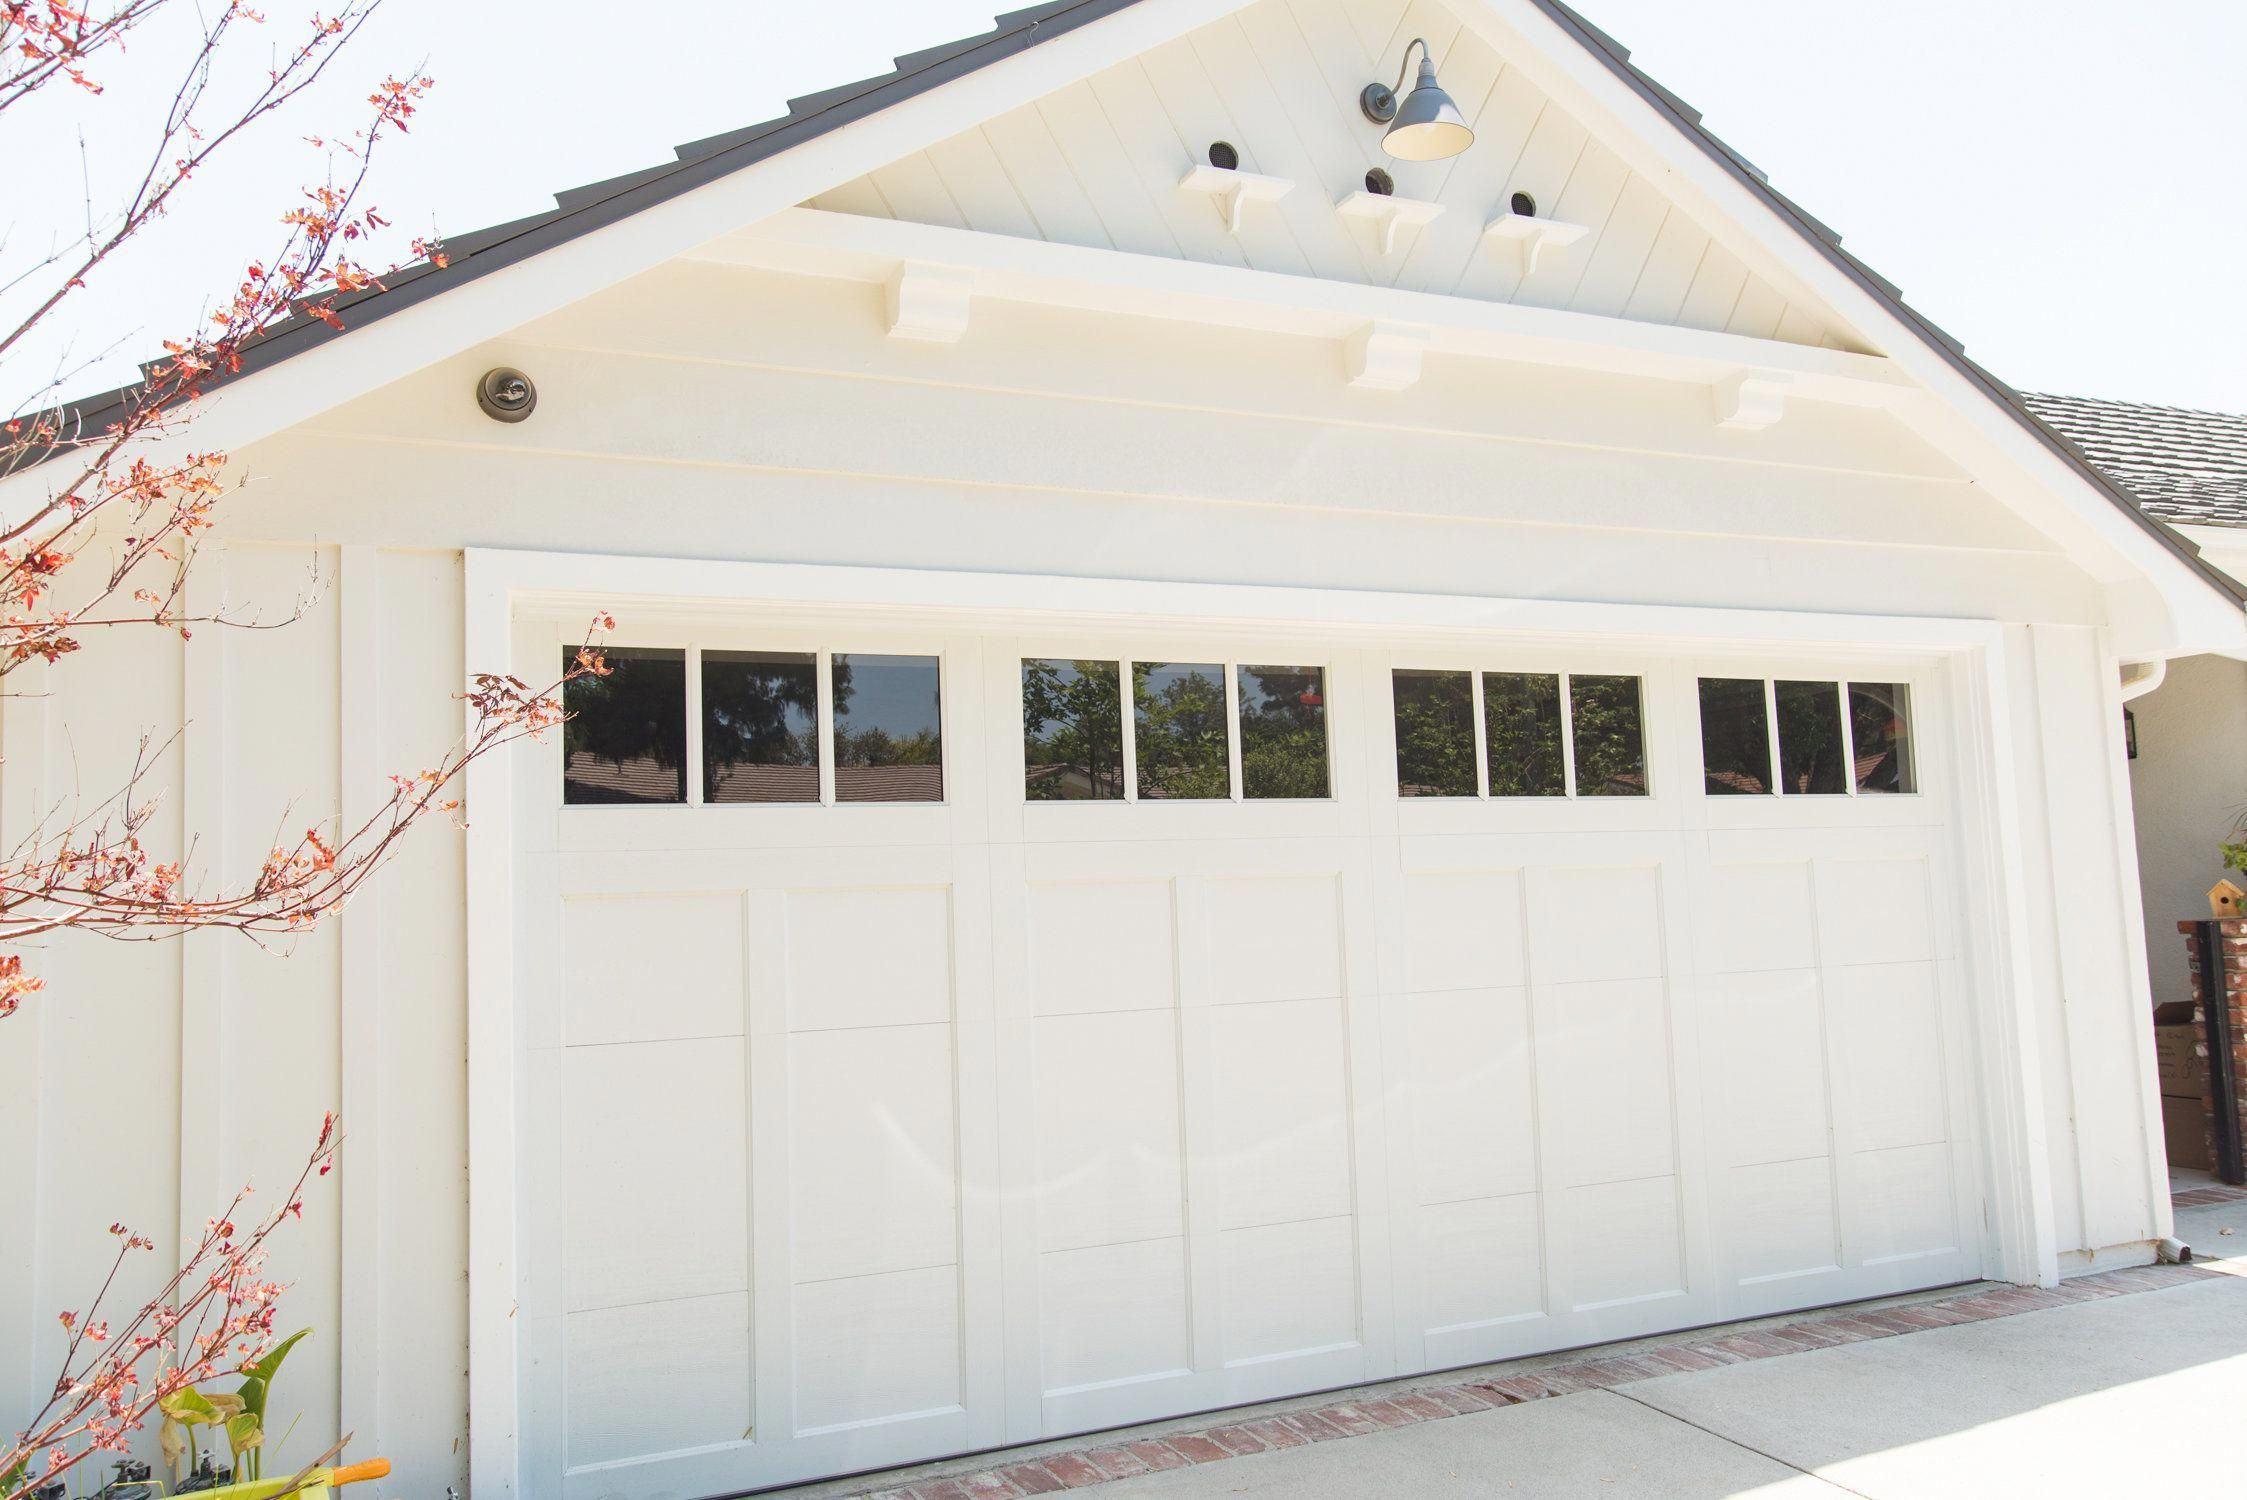 Vintage Garage Decor Garage Ornaments Mens Garage Signs 20190629 Garage Door Styles Garage Doors Carriage House Doors